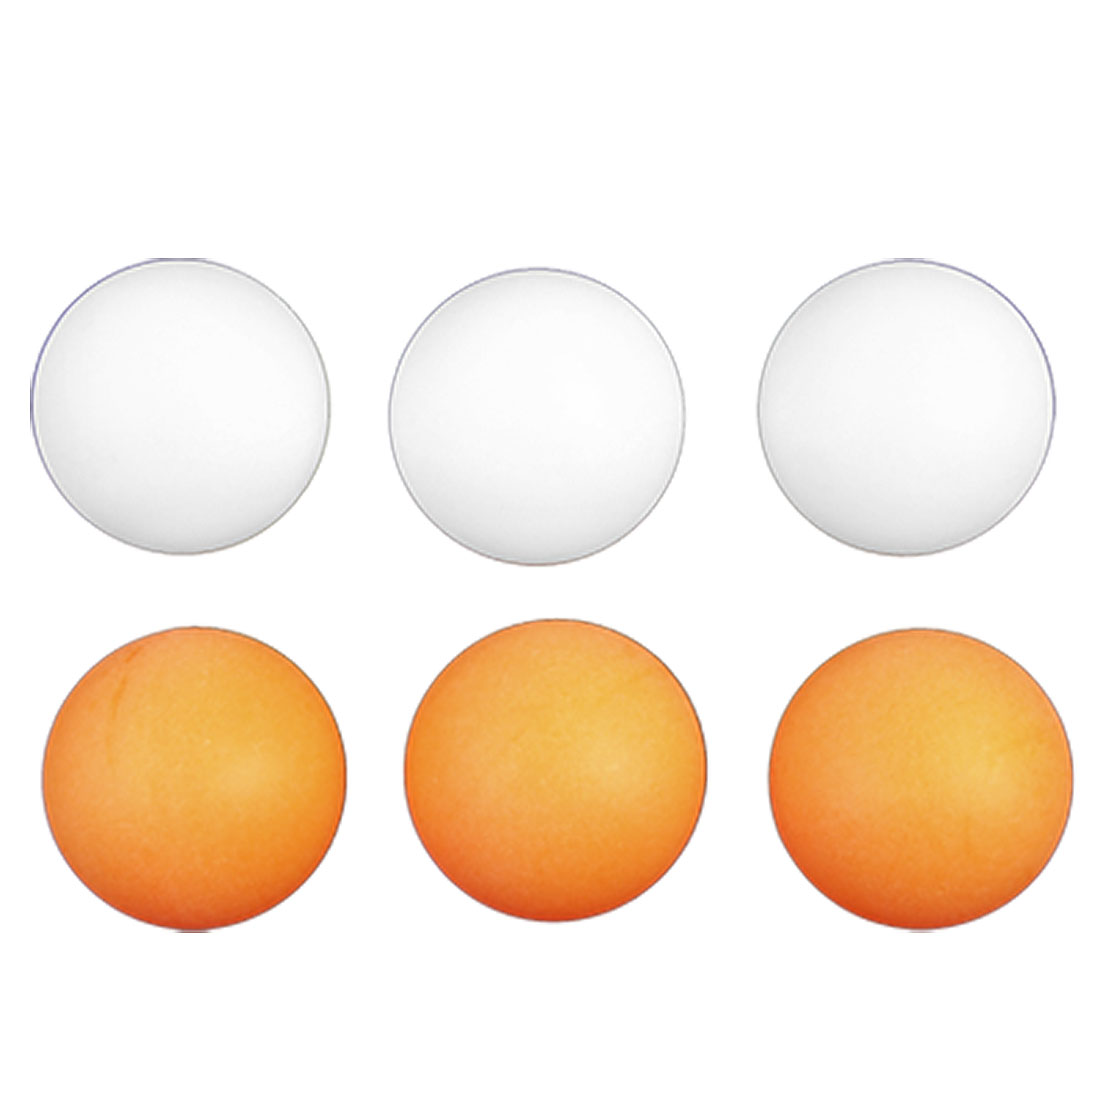 6-Pcs-40mm-Diameter-Orange-White-Table-Tennis-Balls